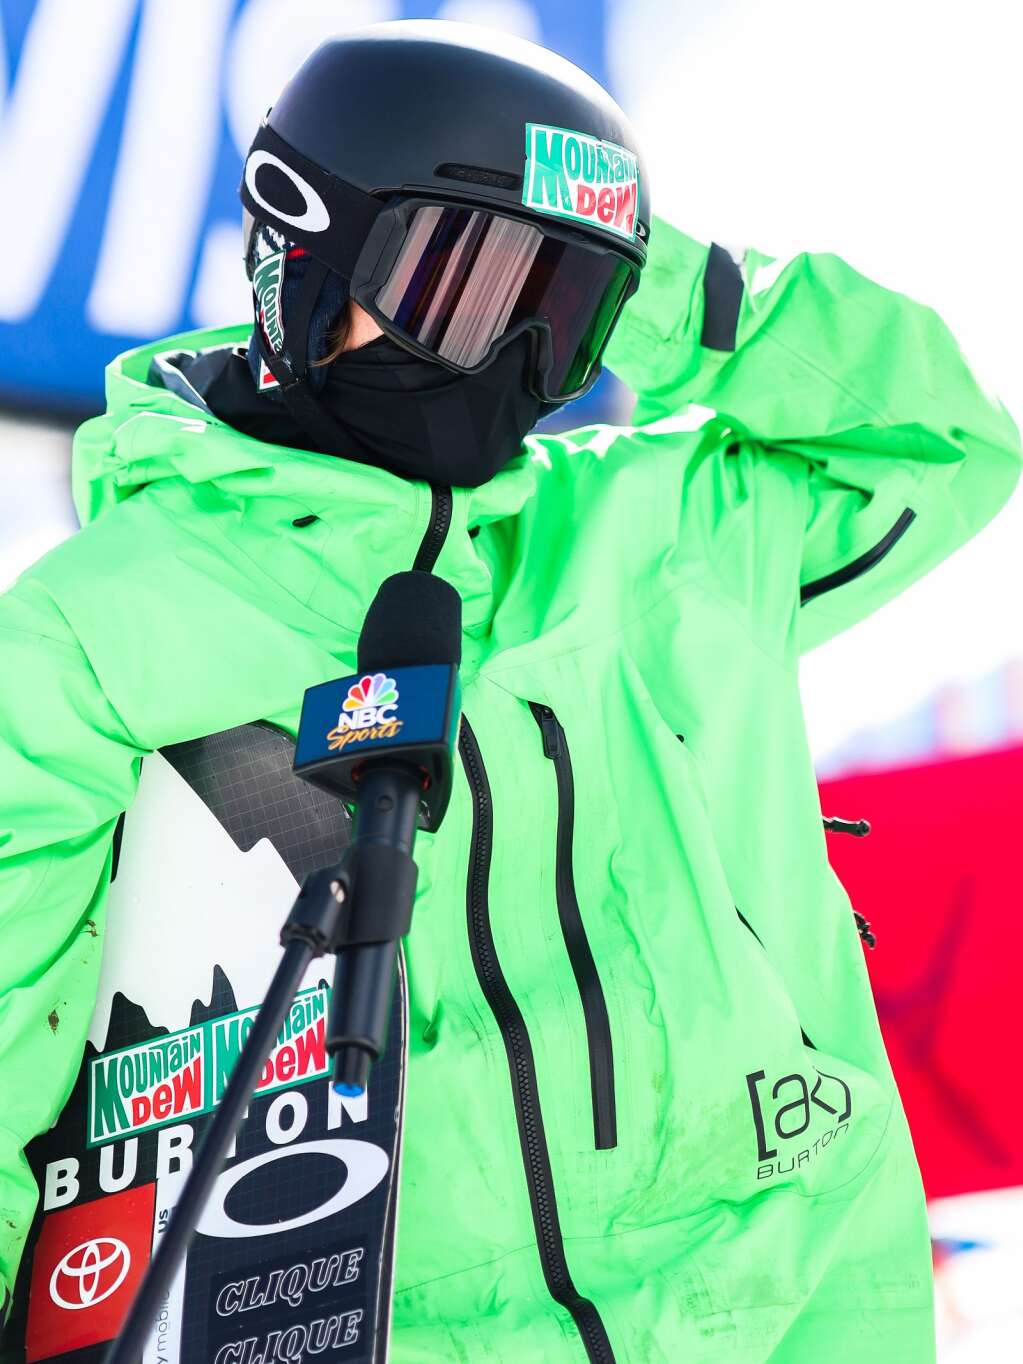 Summit County's Red Gerard is interviewed after the men's snowboard slopestyle finals at the U.S. Grand Prix and World Cup on Saturday, March 20, 2021, at Buttermilk Ski Area in Aspen. Photo by Austin Colbert/The Aspen Times.